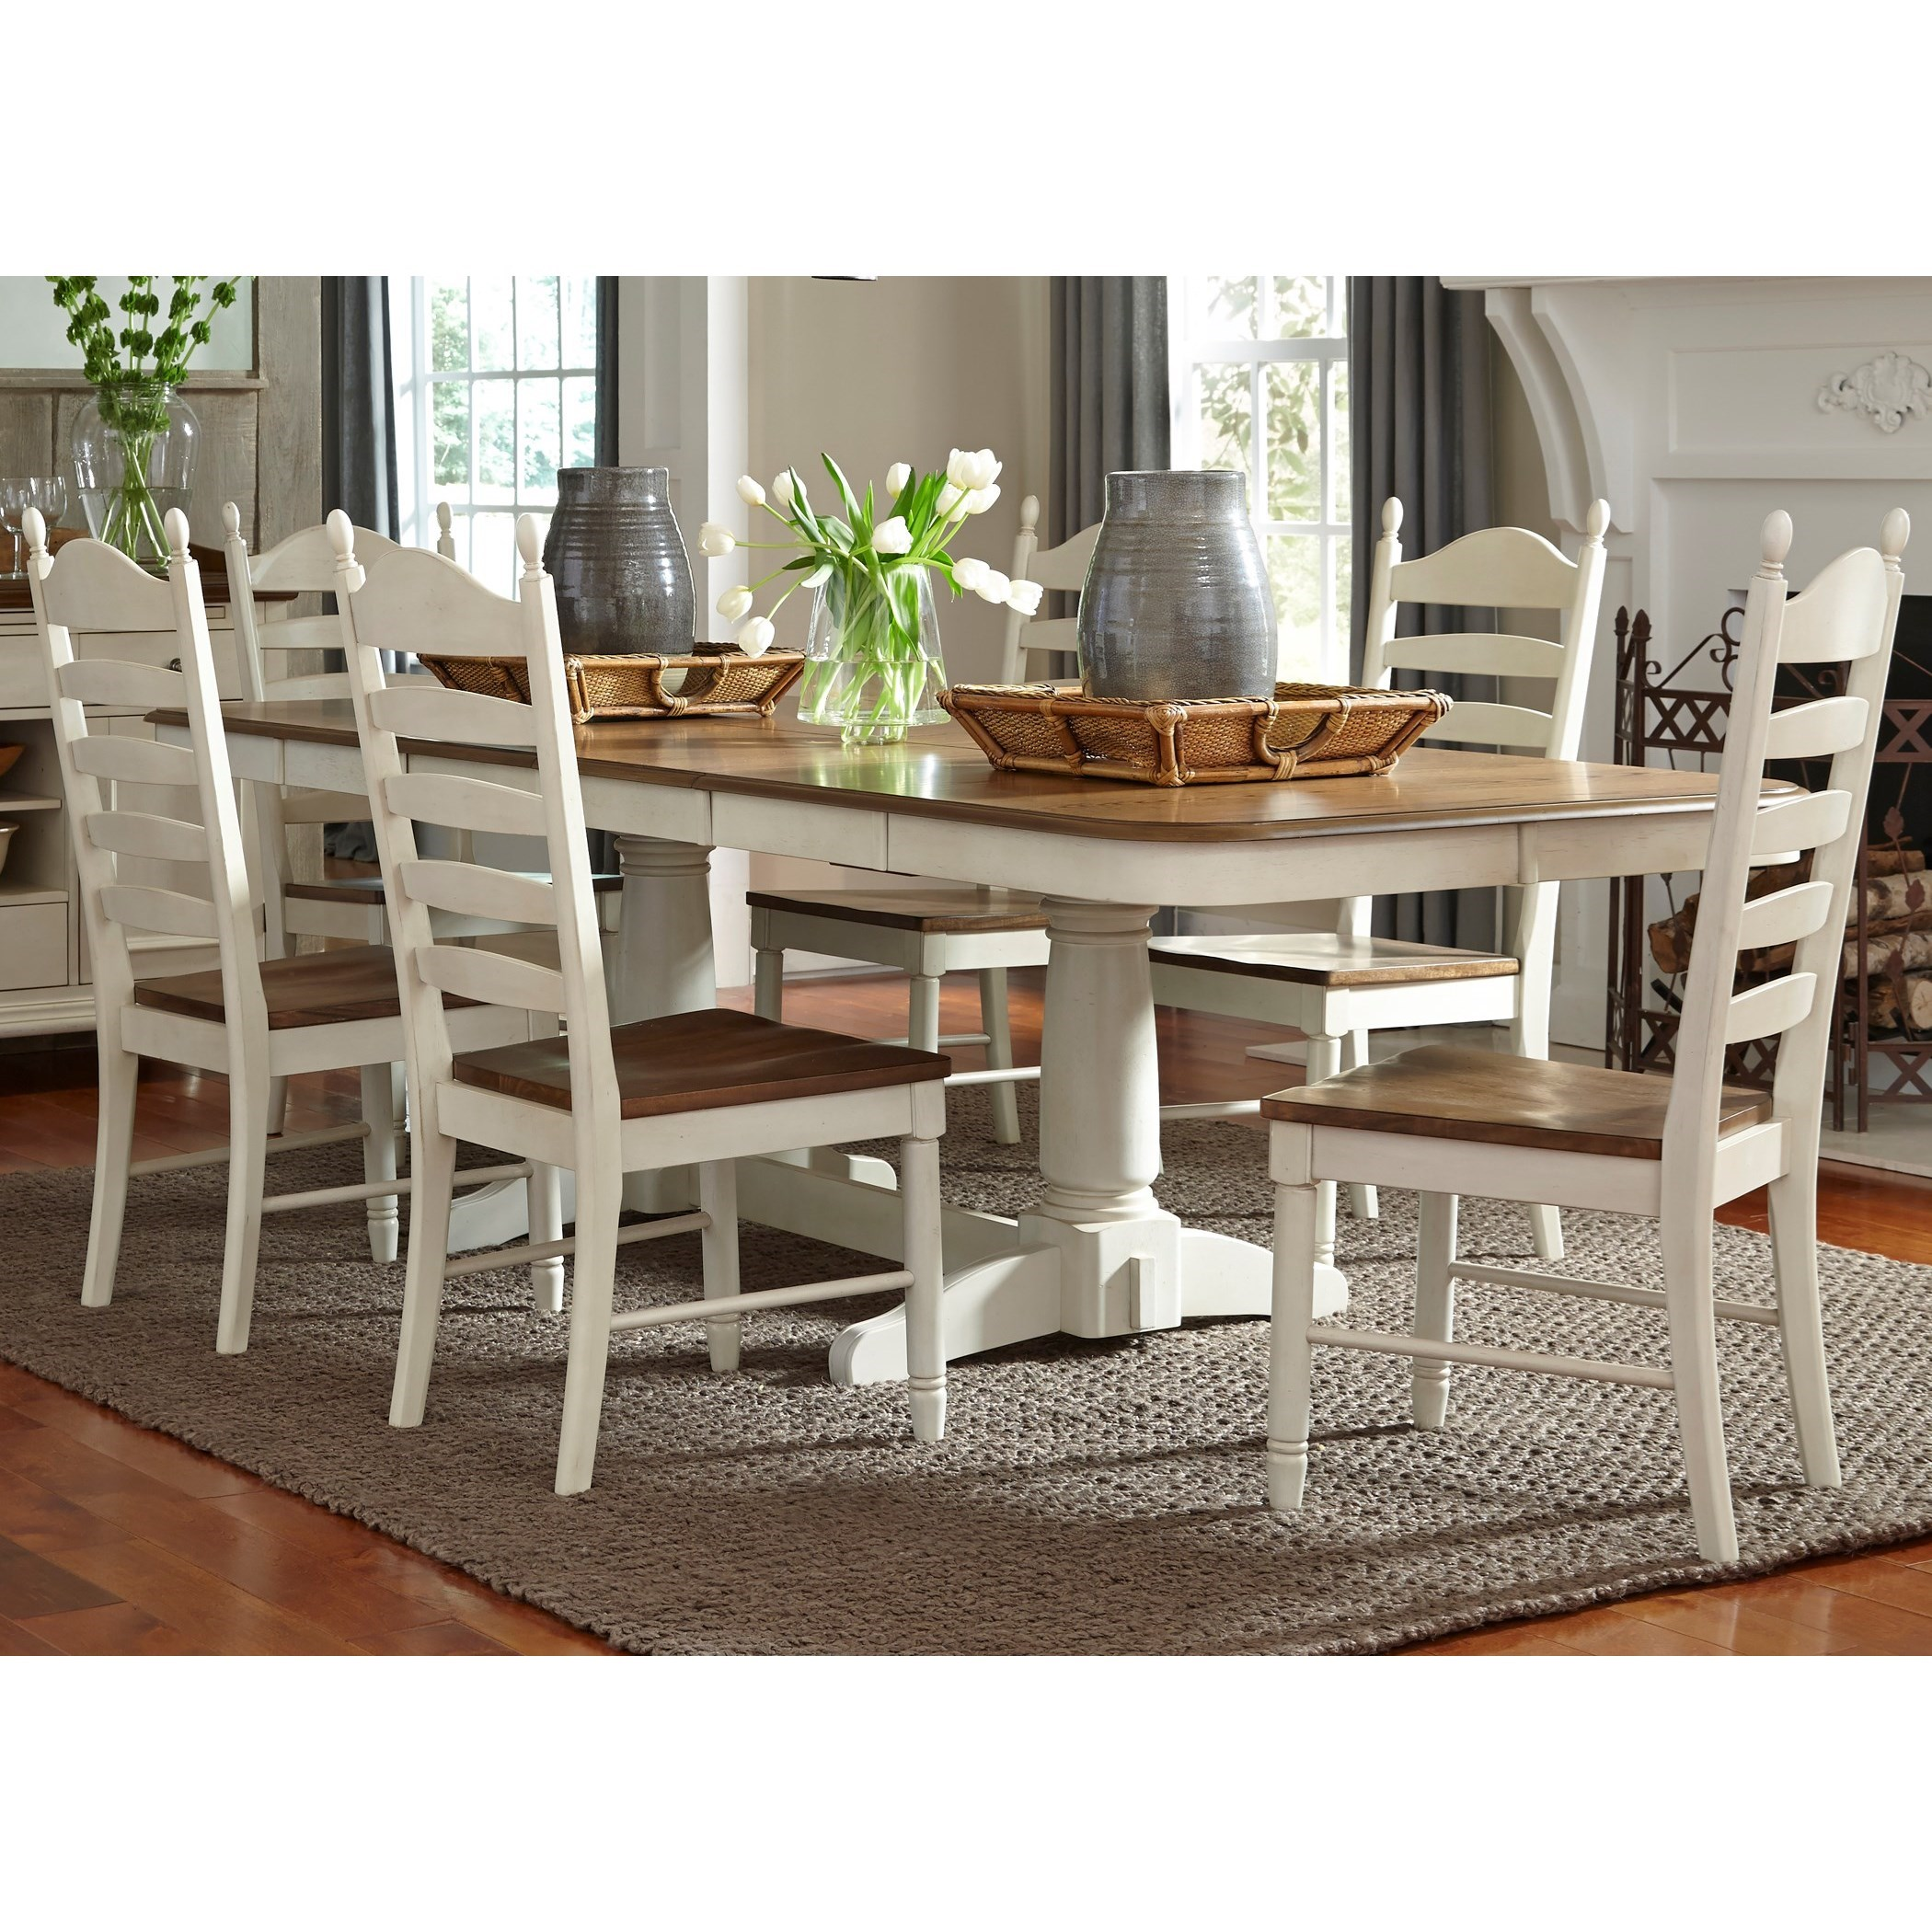 Liberty Dining Room Furniture: Springfield Dining 7 Piece Double Pedestal Table & Chair